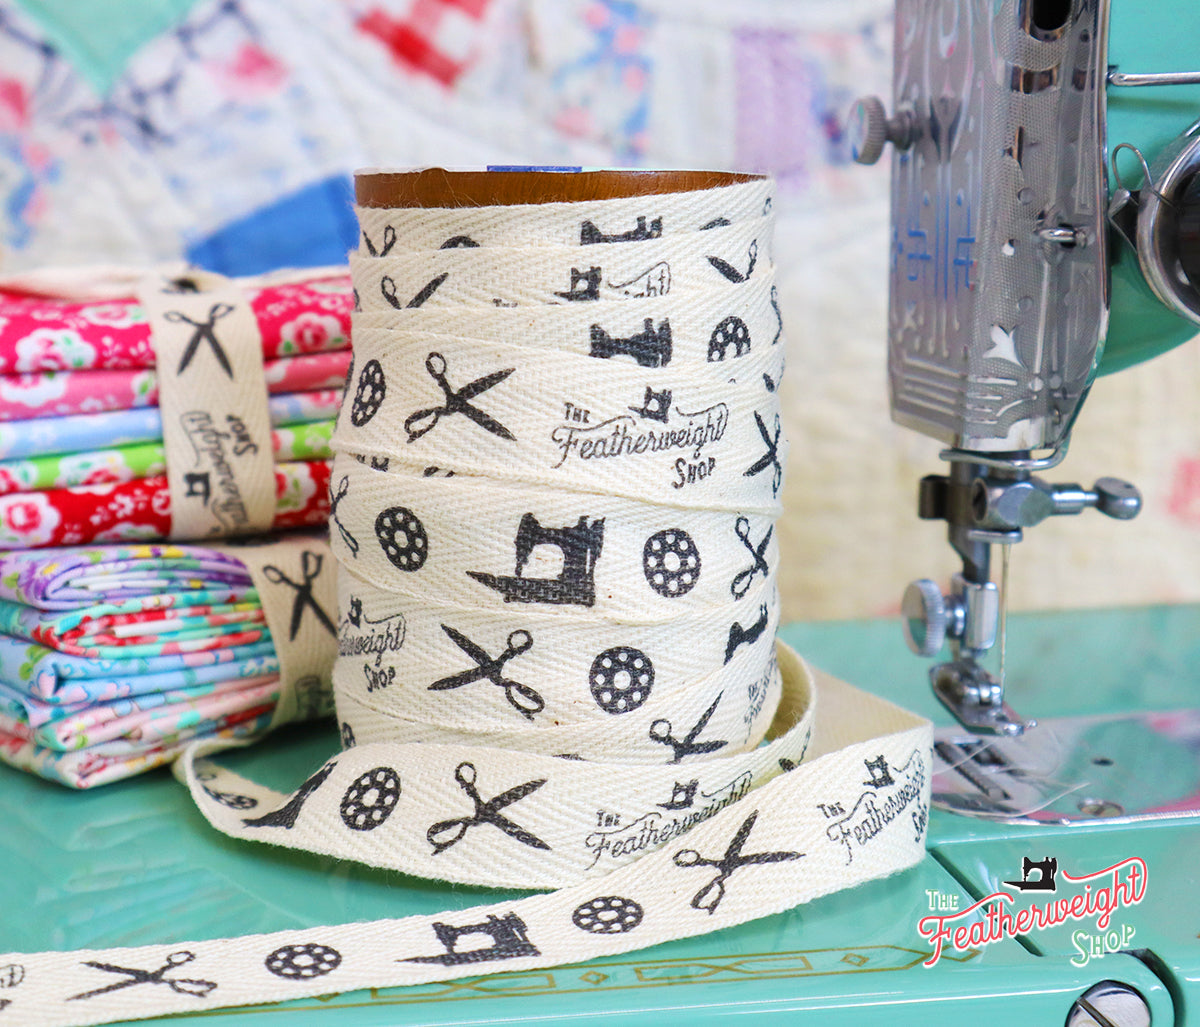 Twill Tape, Featherweight Shop Ribbon featuring the Singer 221, Bobbins and Scissors (sold by the yard)